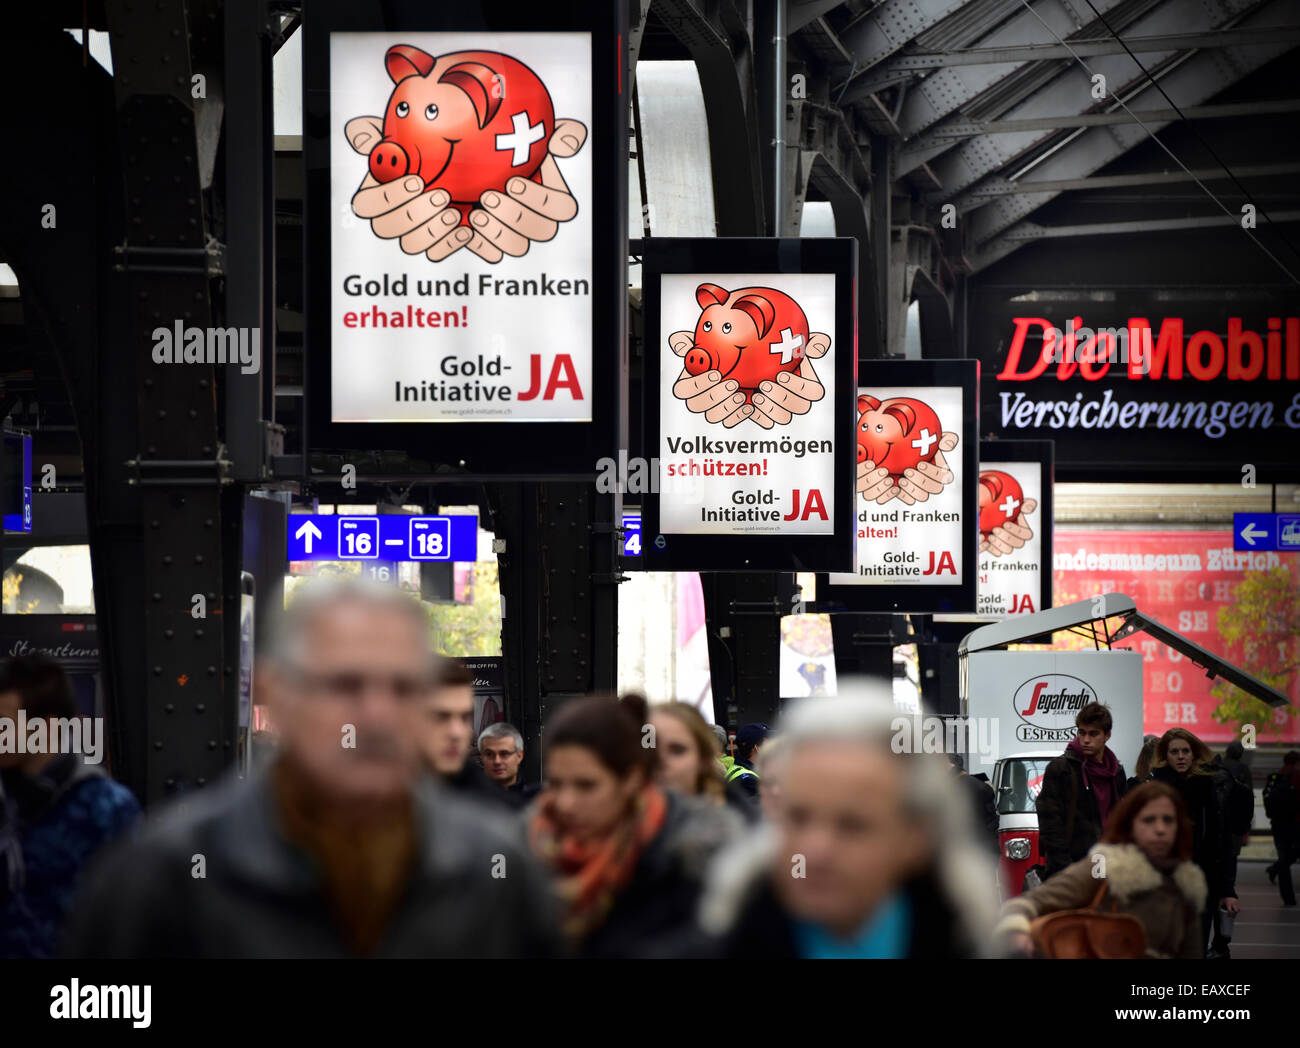 Zurich, Switzerland. 21st Nov, 2014. Plenty of referendum campaign posters for the Swiss 'Gold Initiative' - Stock Image